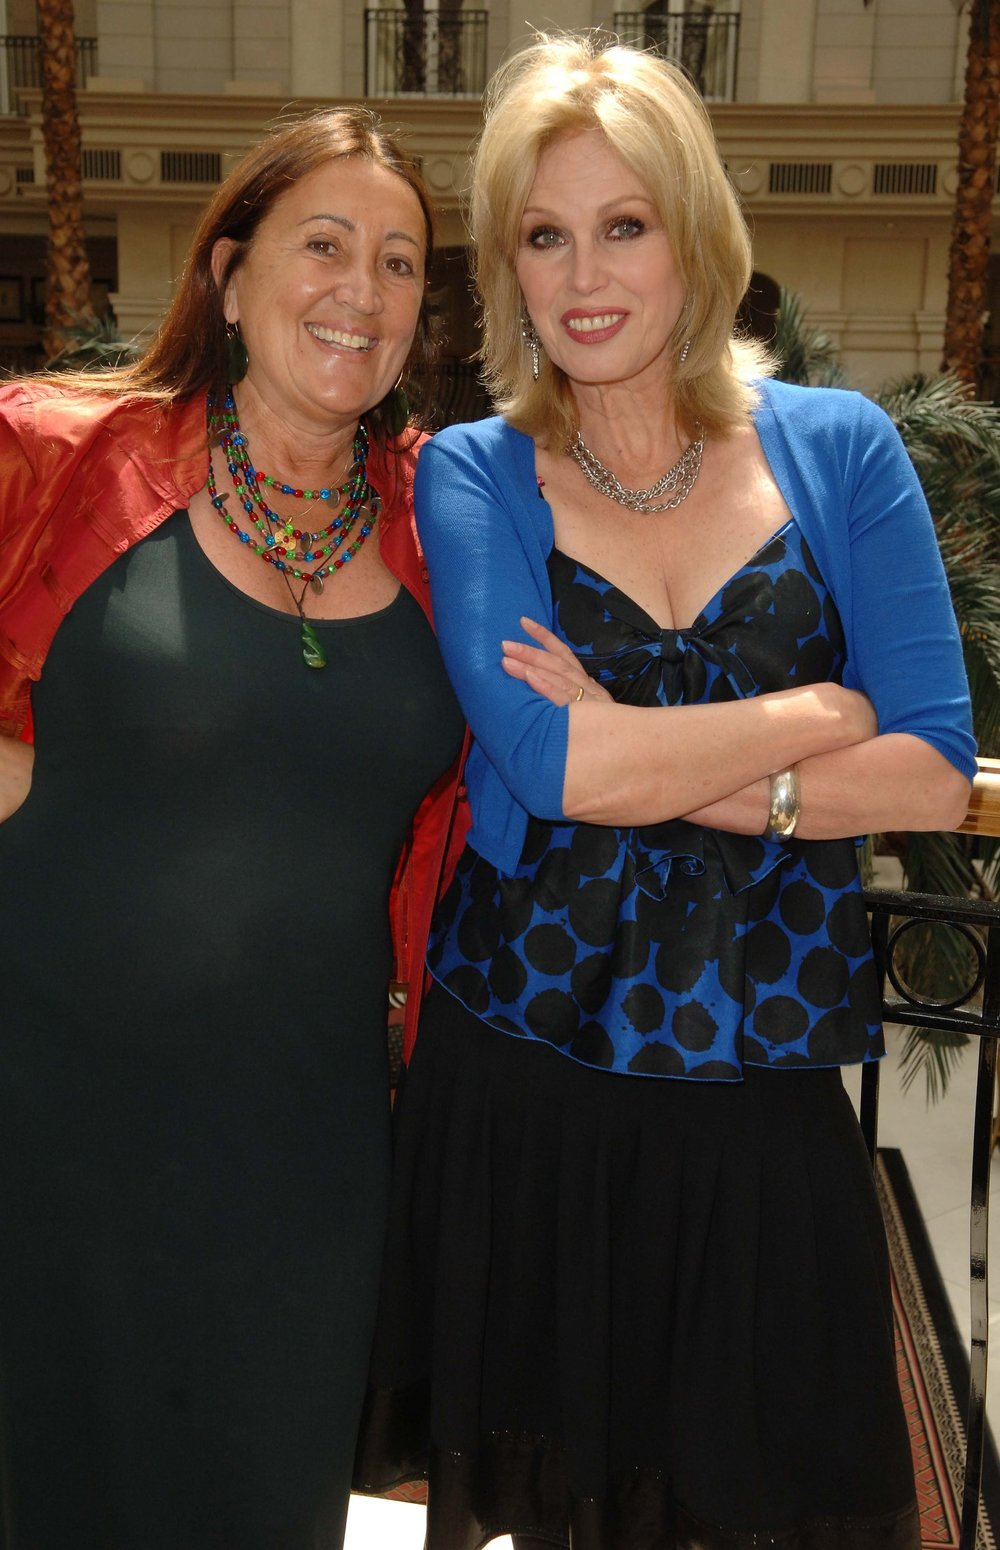 Hanging out with Joanna Lumley, aka Patsy, at a fashion industry event